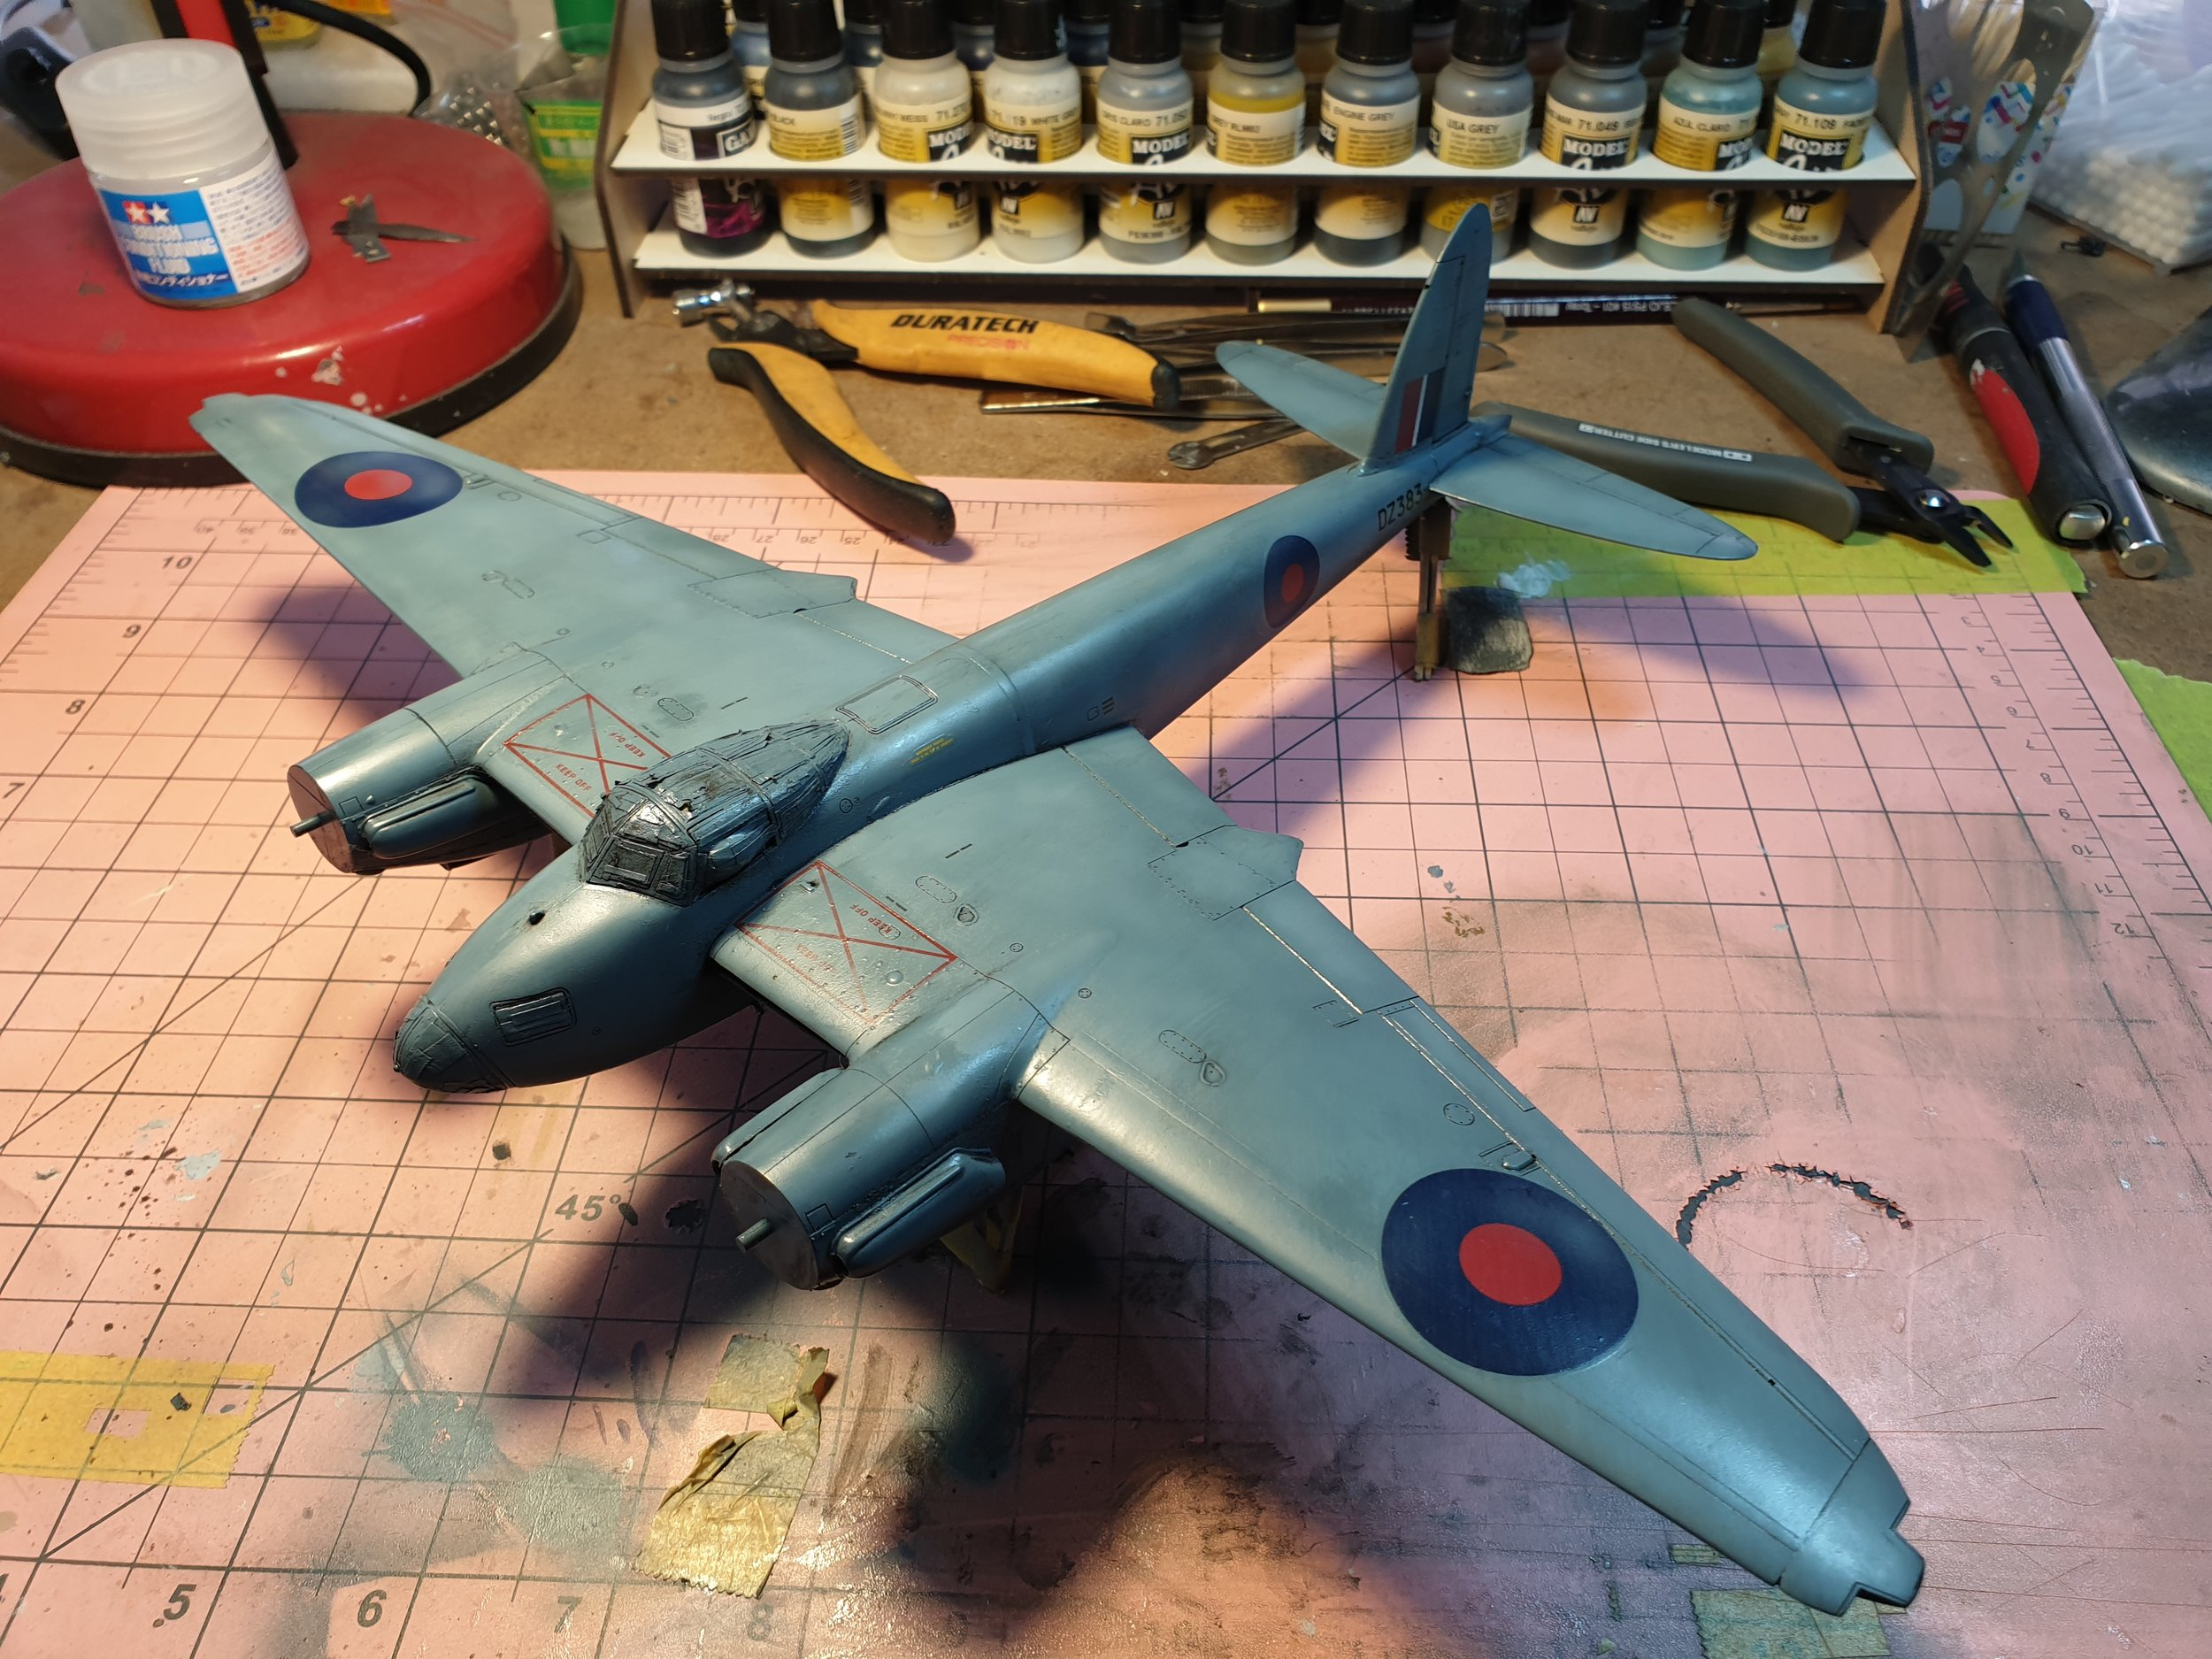 With the majority of the wash removed, the panel lines pop and the colour is blended and darkened beautifully!